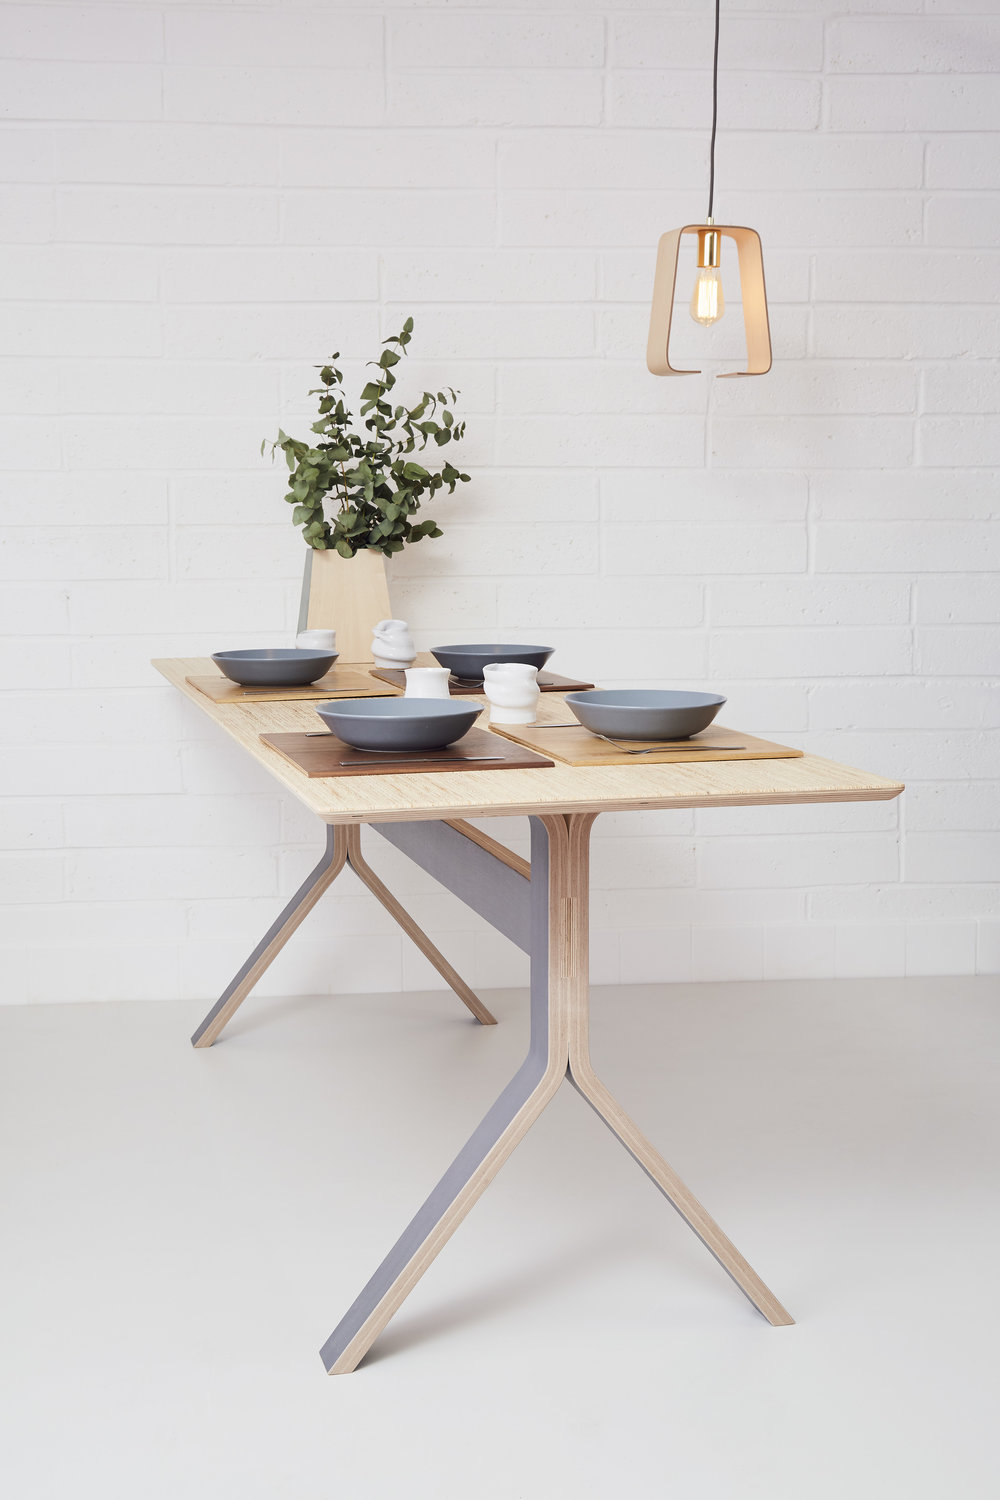 Table (from £288), Fab pendant lamp in Oak and Brass (£90), Erlen Planter (£45)